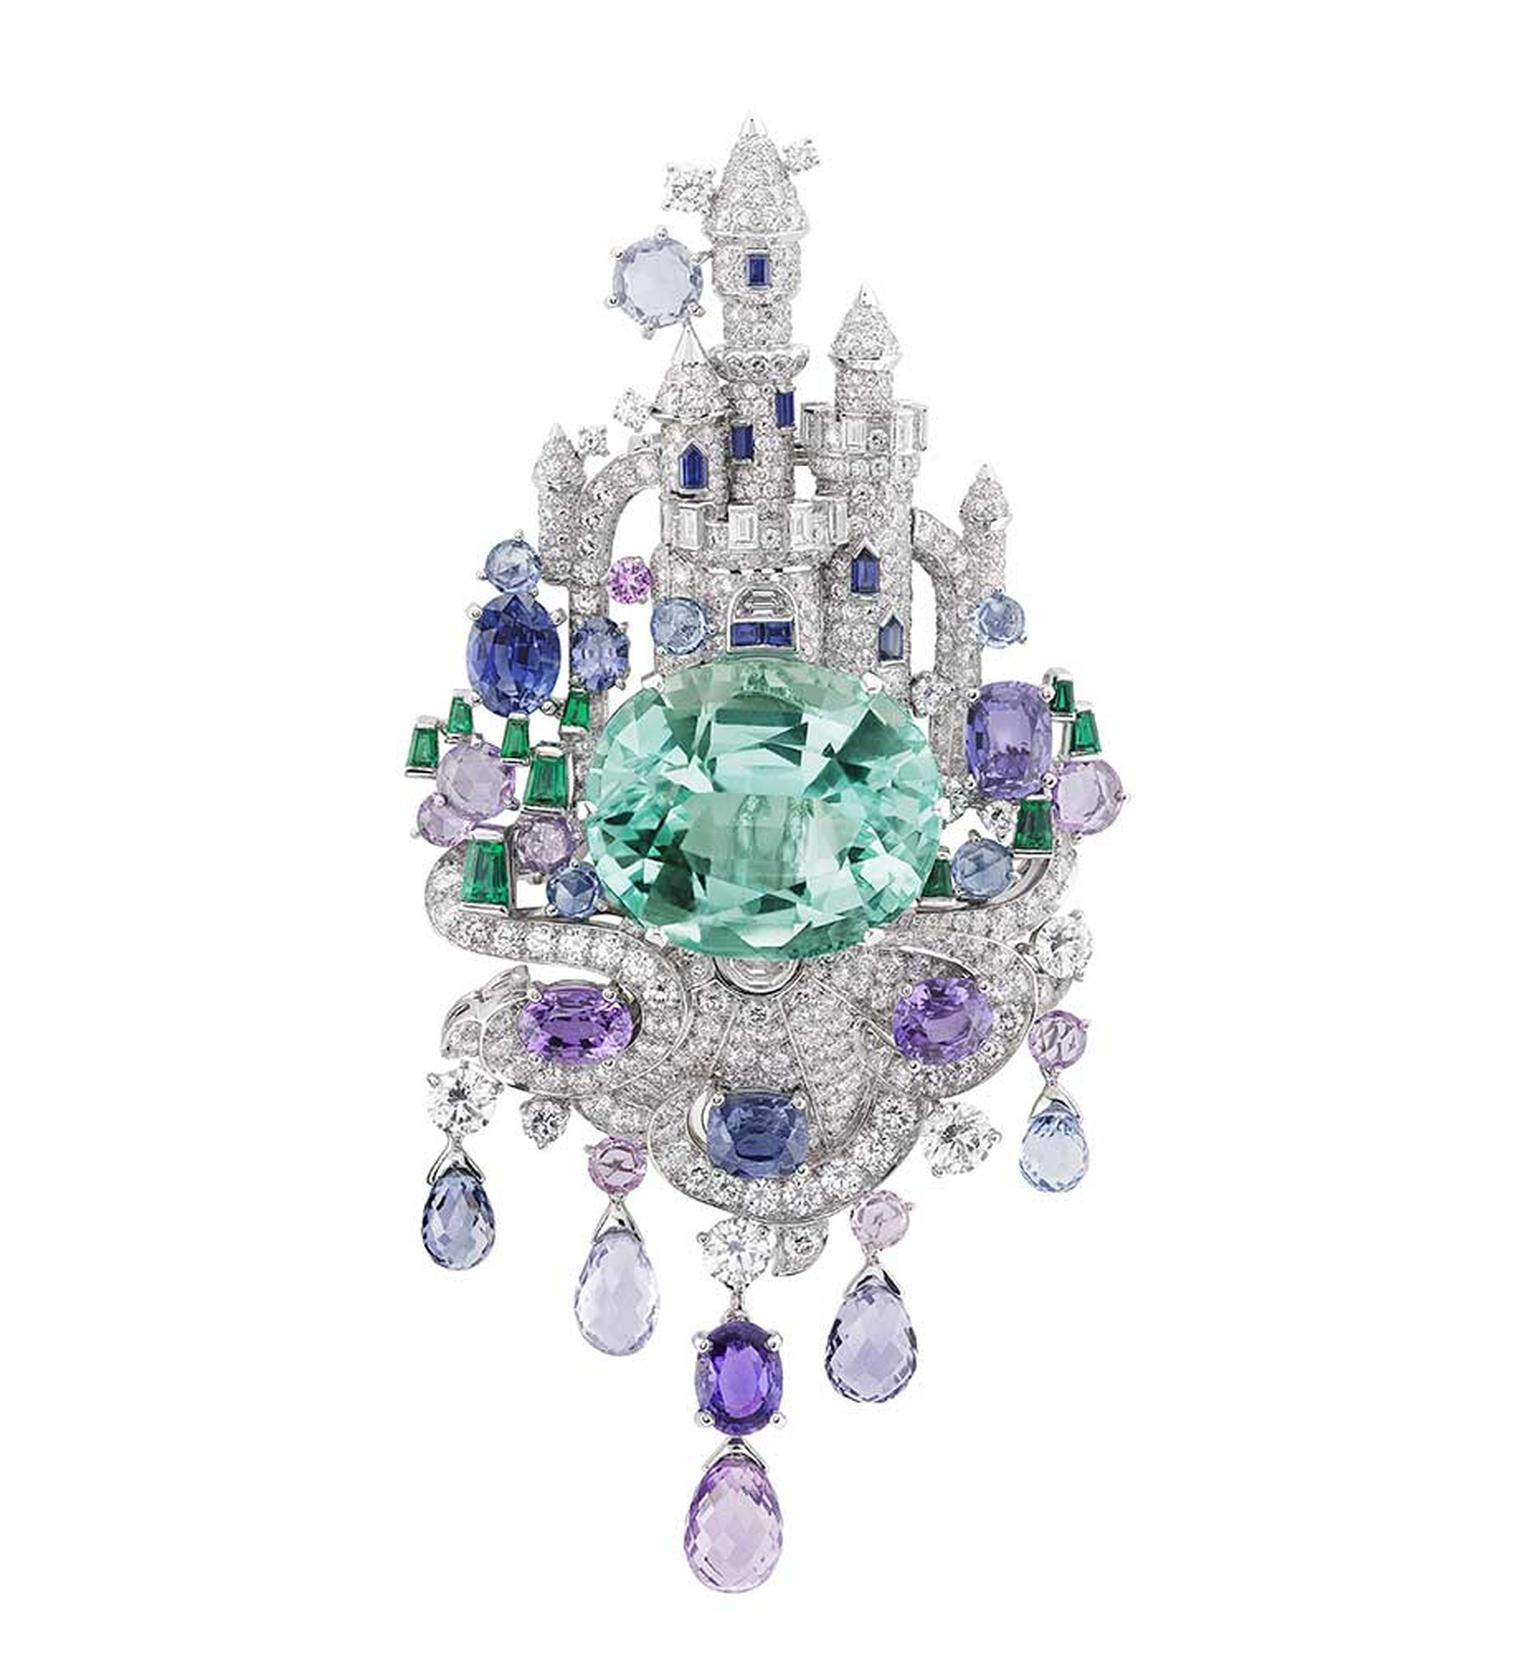 Van Cleef & Arpels Peau d'Âne collection white gold Enchanted Castle brooch with multiple cut diamonds, emeralds, sapphires and briolette gemstones surrounding a 39ct oval cut emerald.